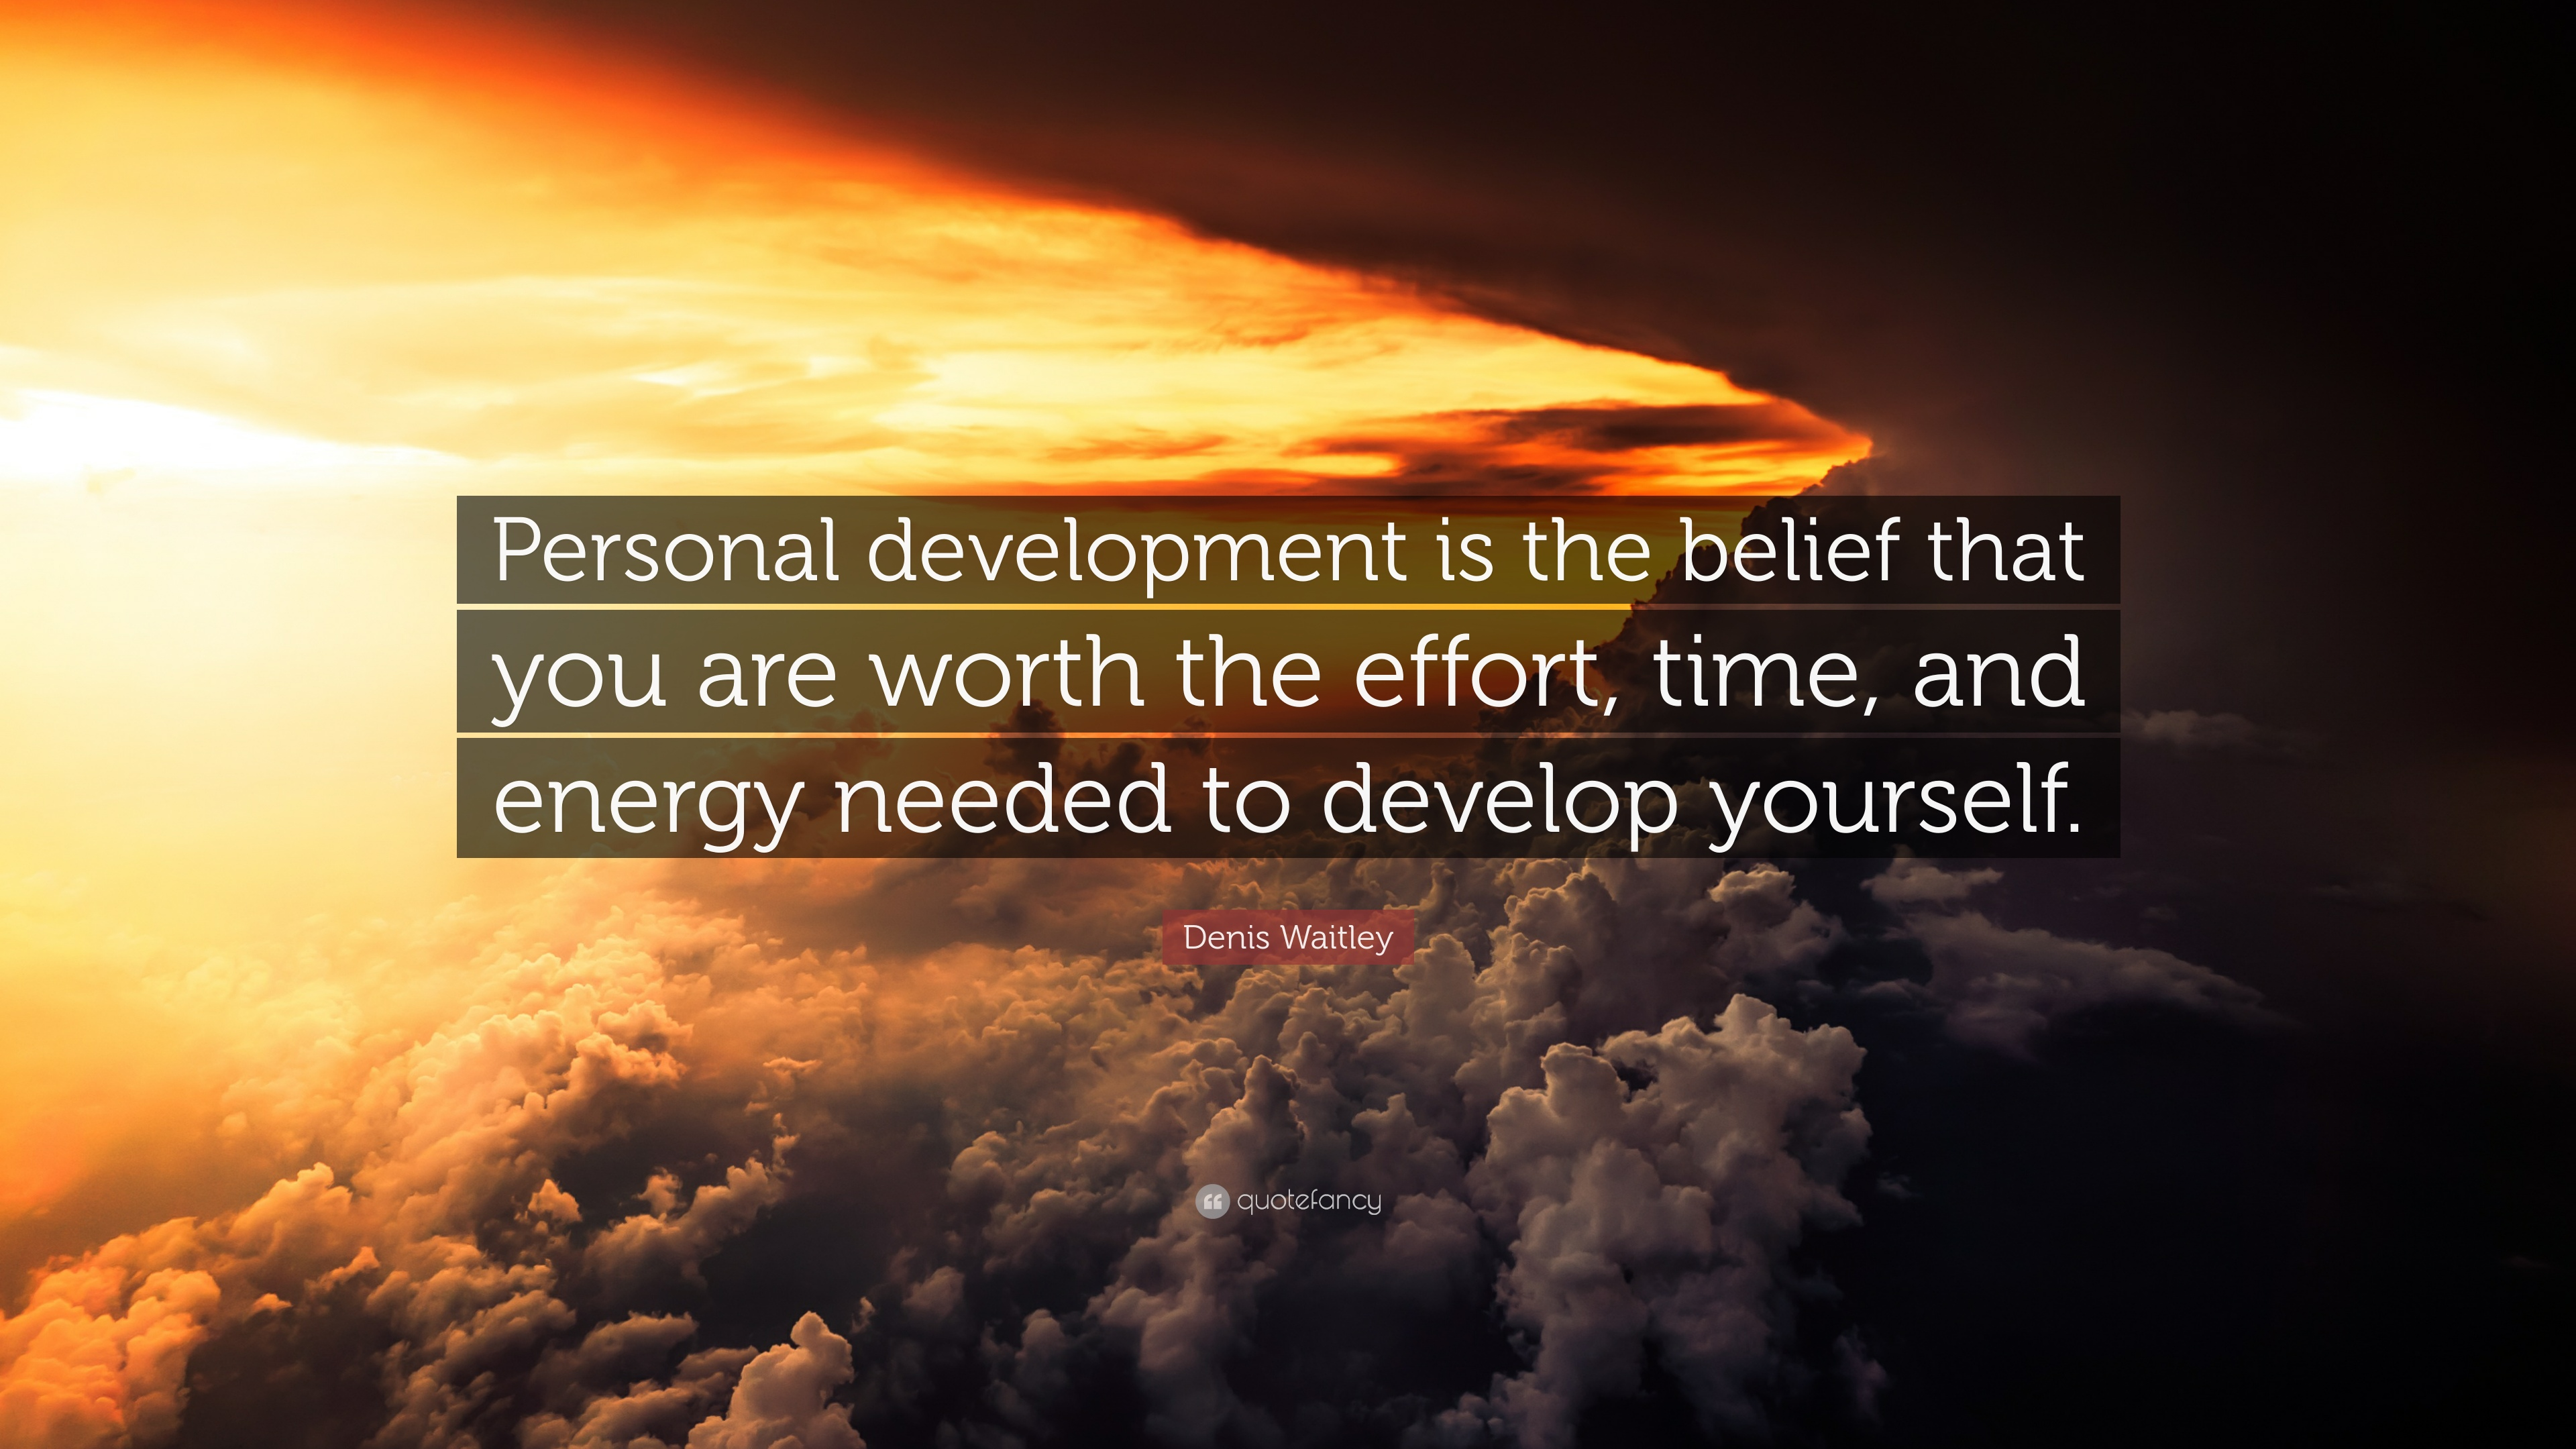 Denis Waitley Quote Personal development is the belief